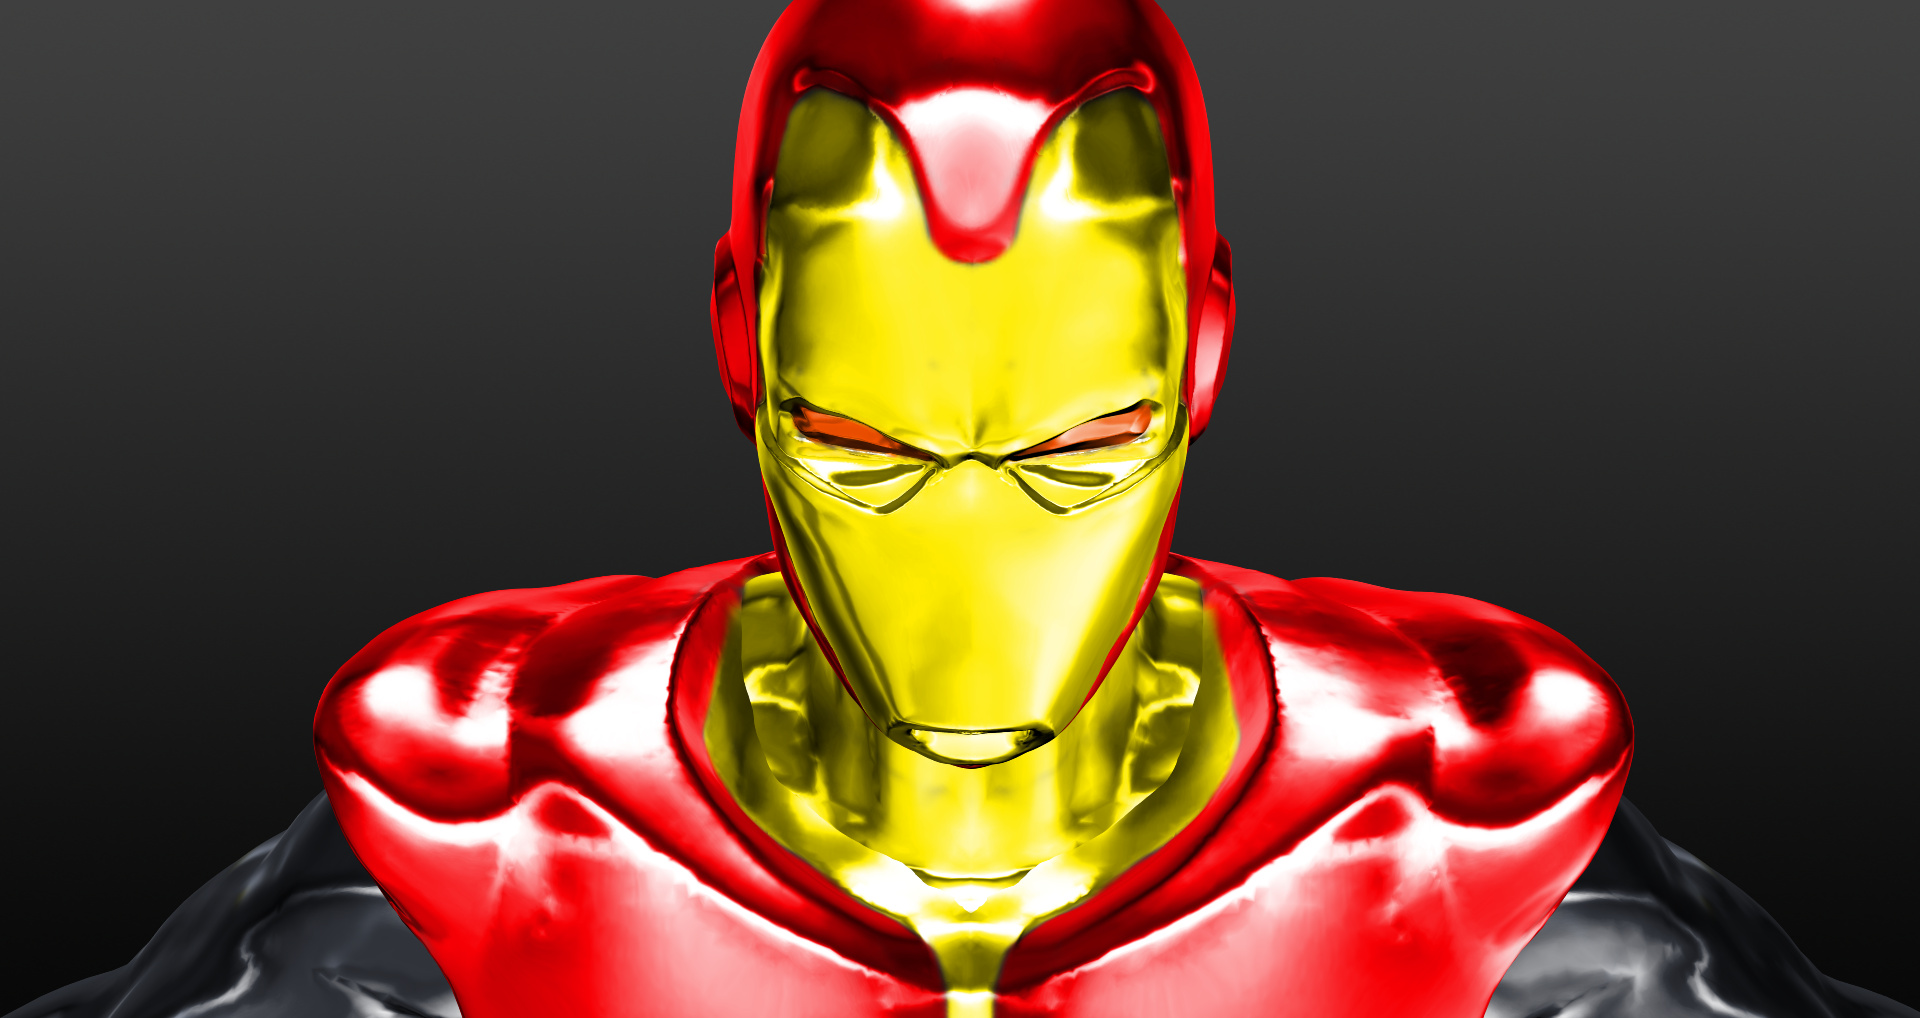 Ironman_Prova24_color3_head_front02